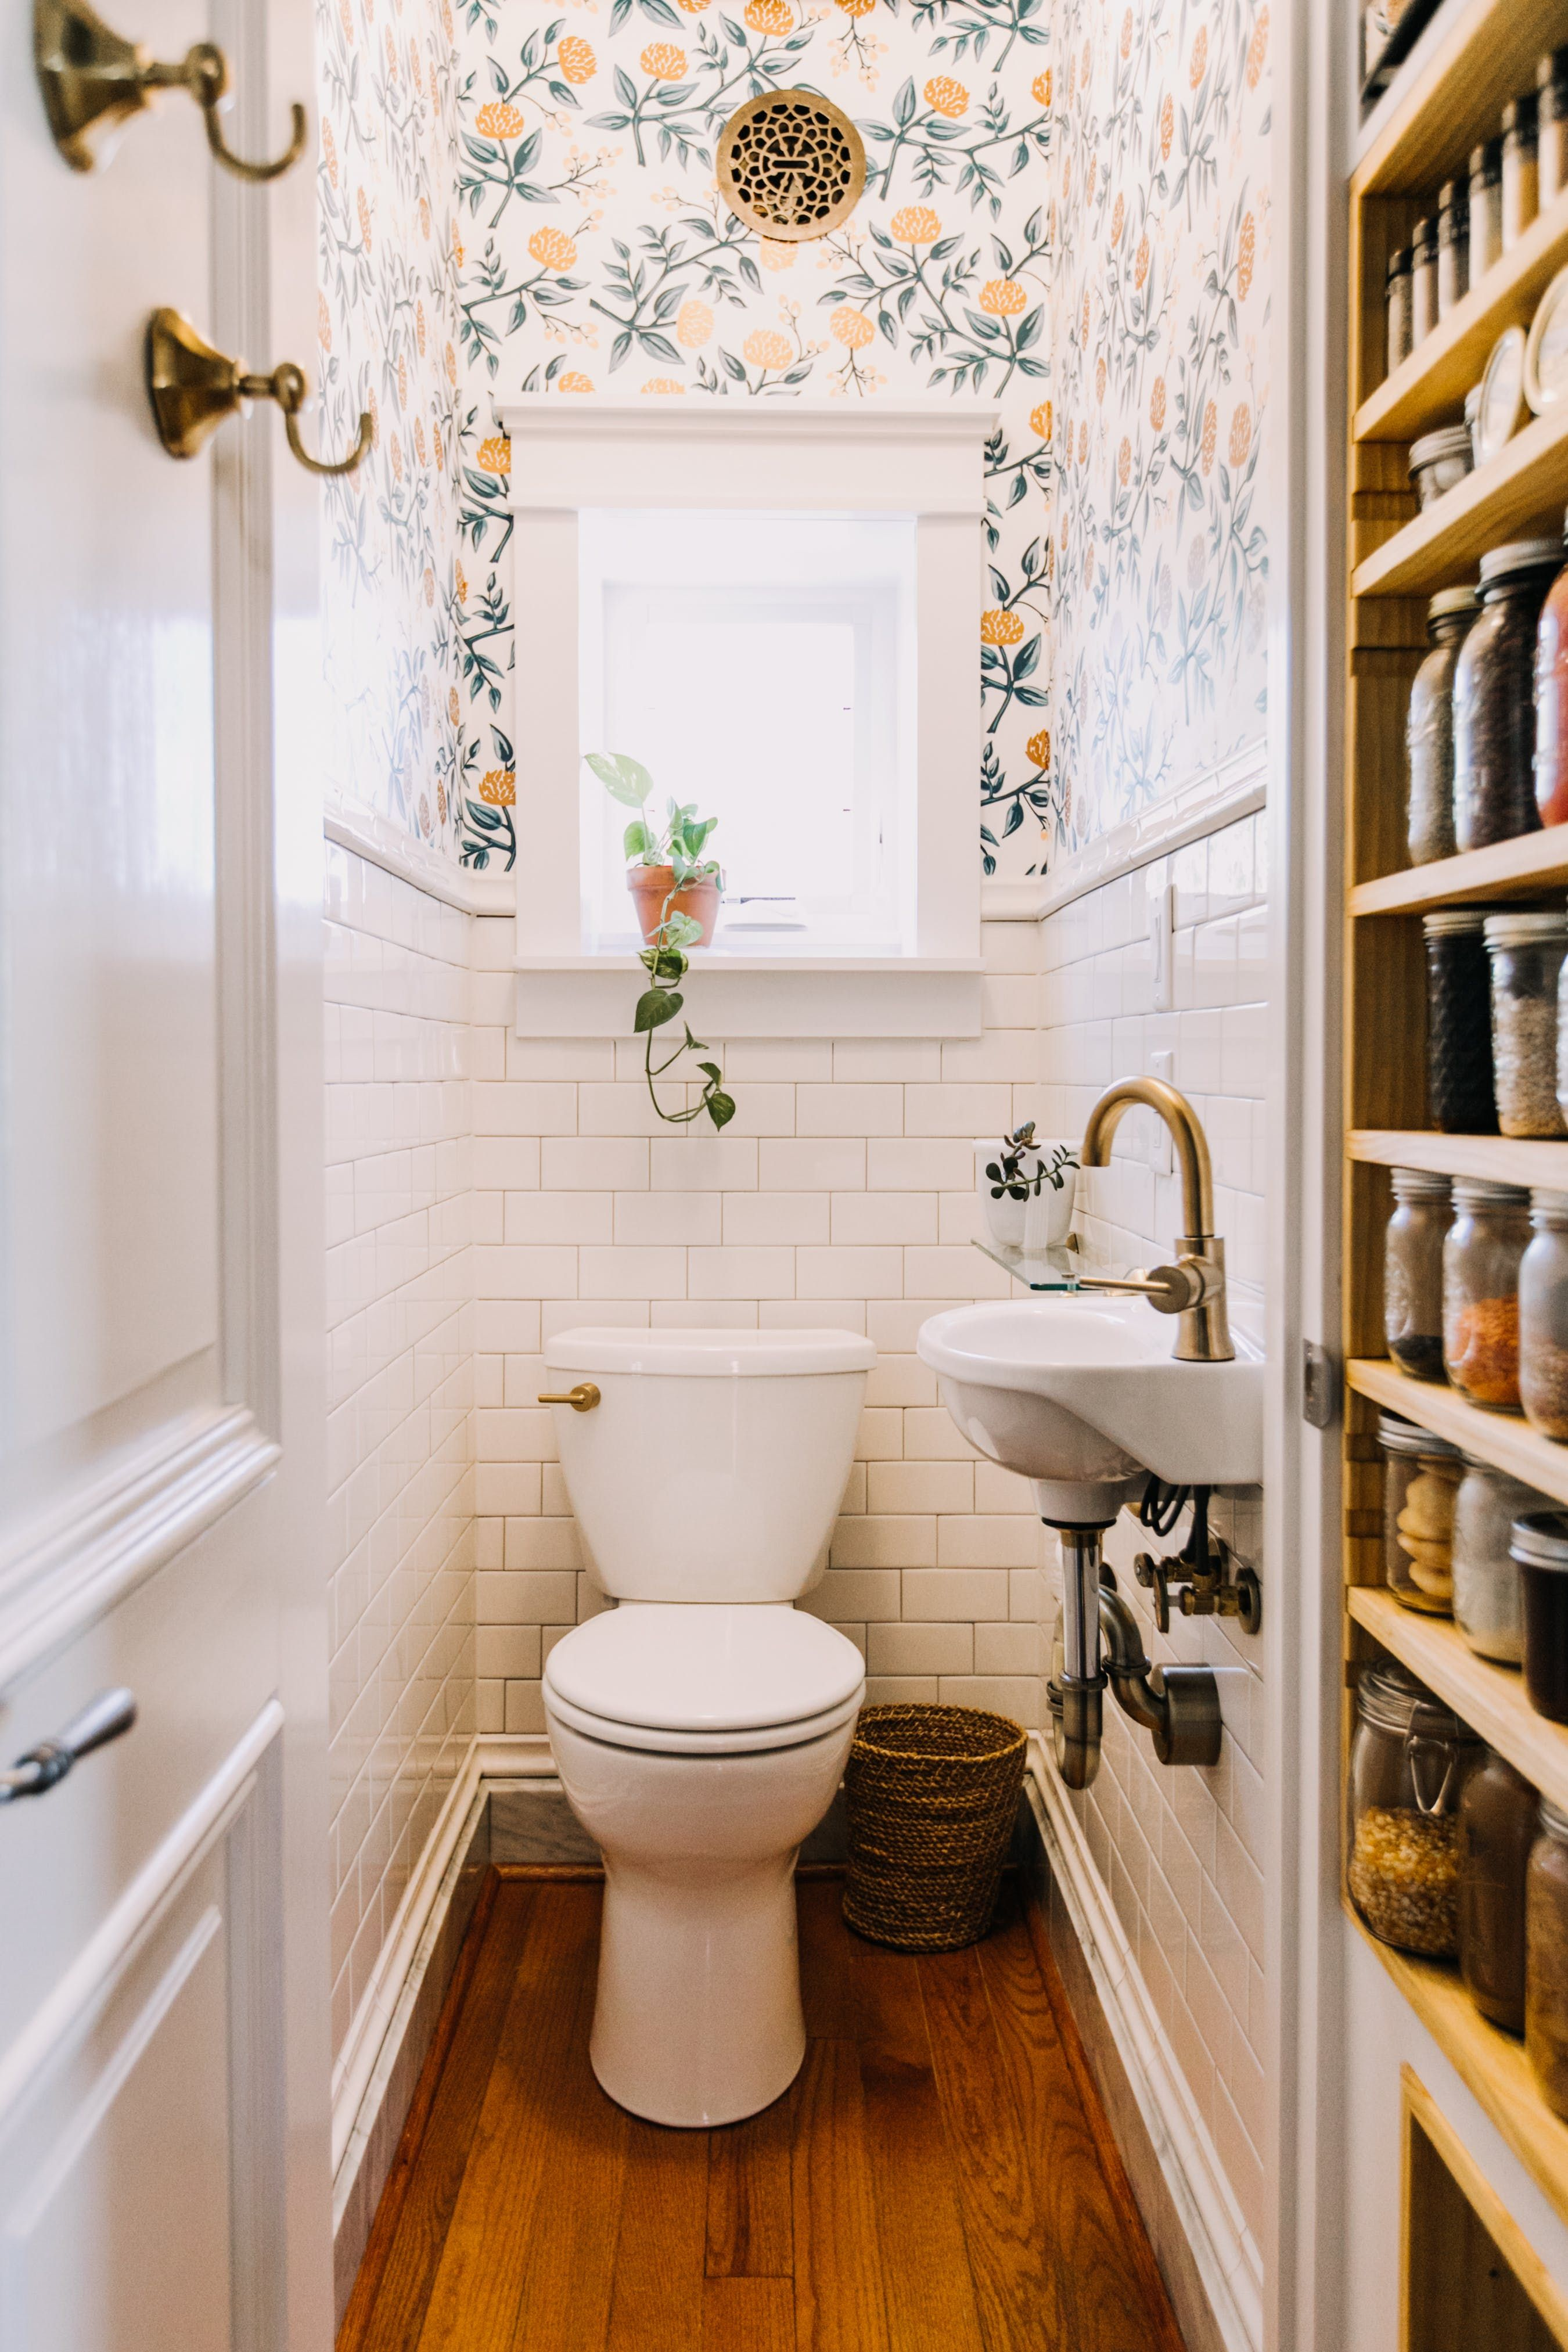 Tour a Newly Remodeled Maximalist Philadelphia Home